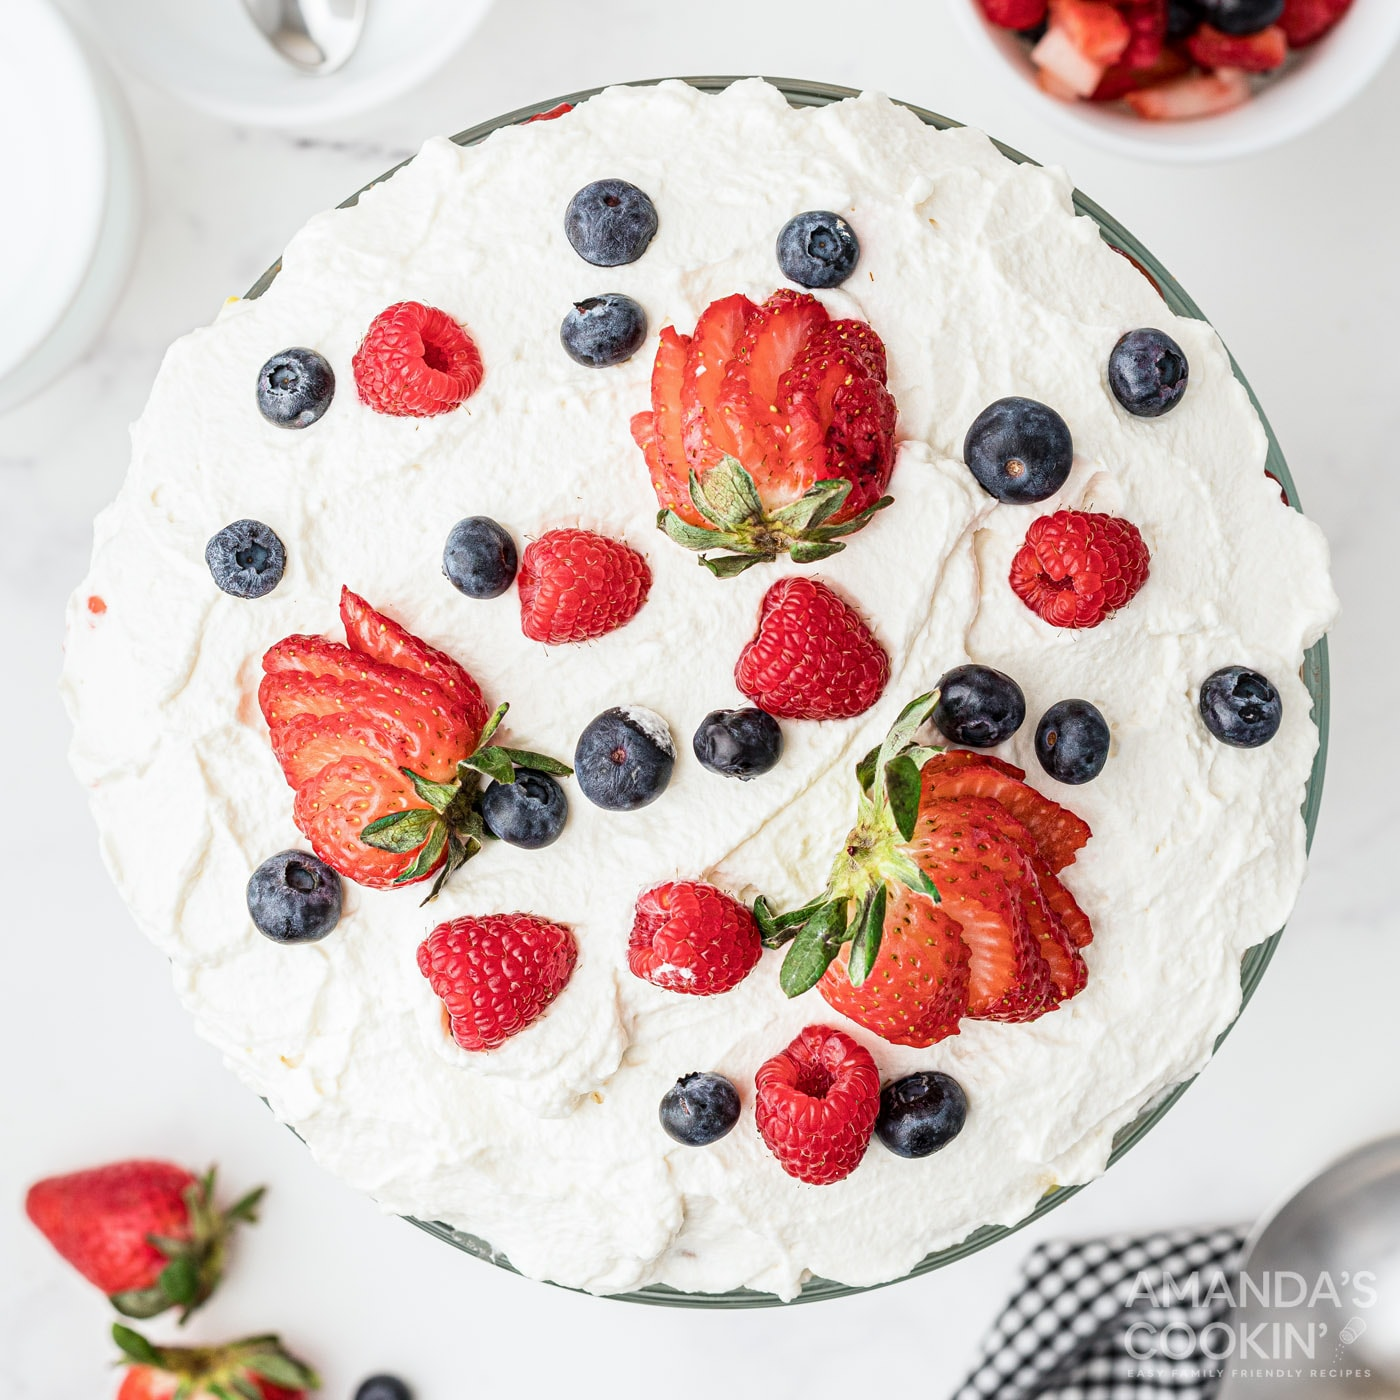 whipped cream and berries on top of trifle